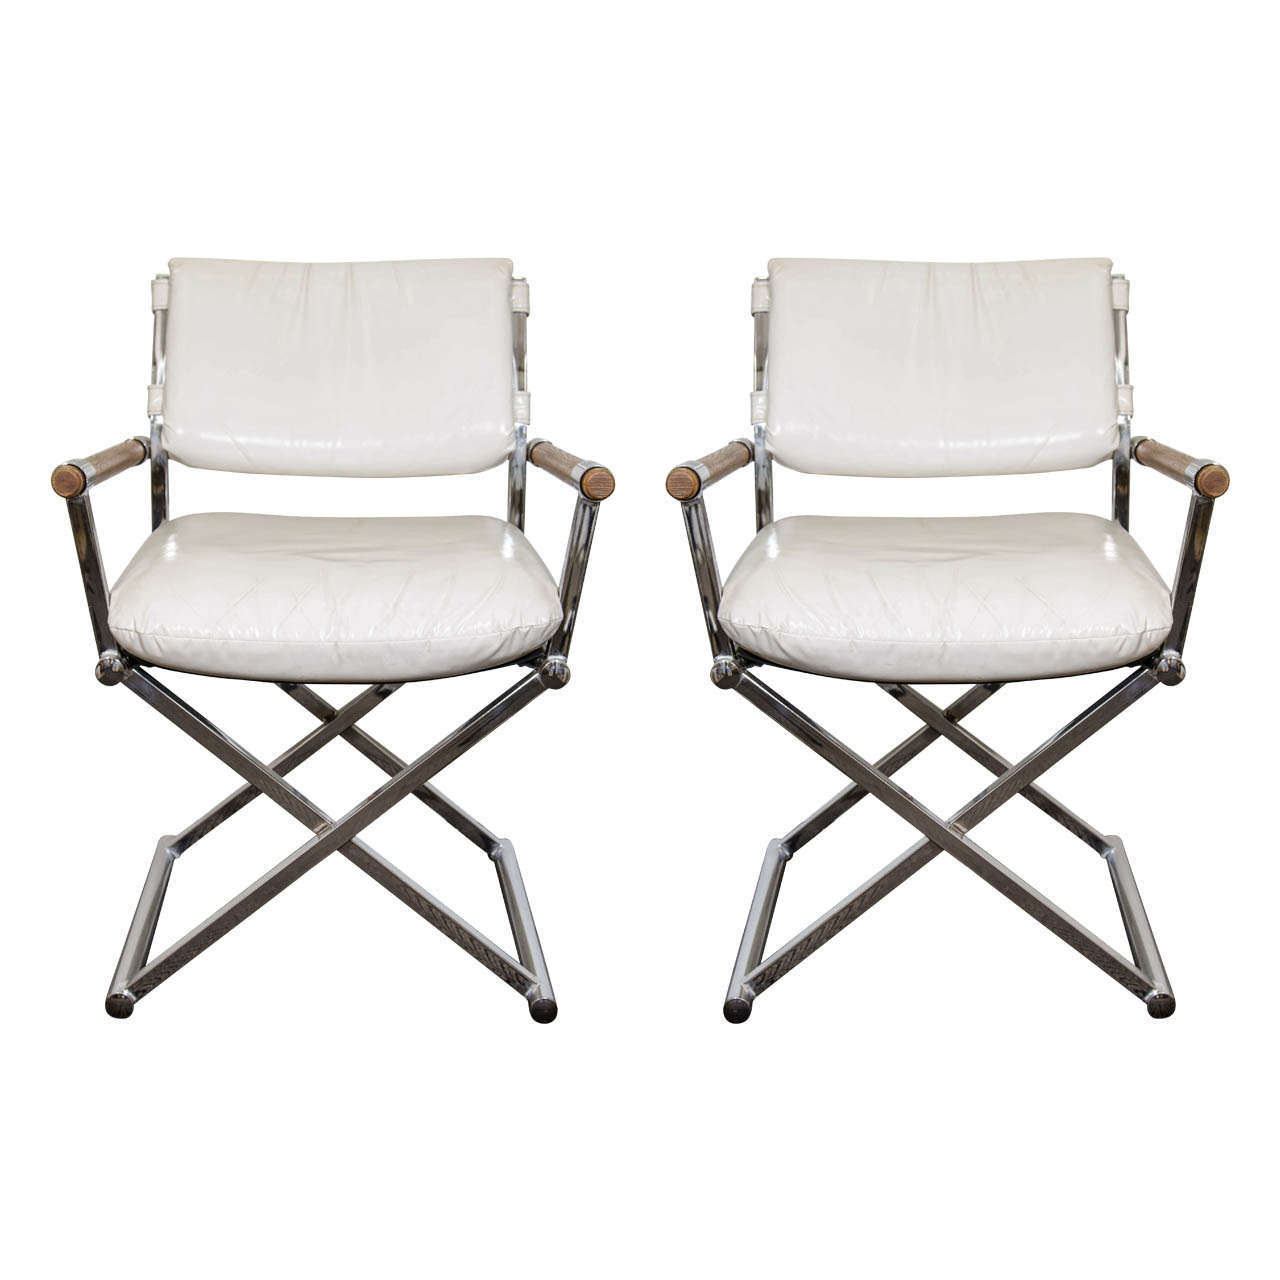 Charmant A Mid Century Pair Of White Leather Directoru0027s Chairs W/ X Base For Sale